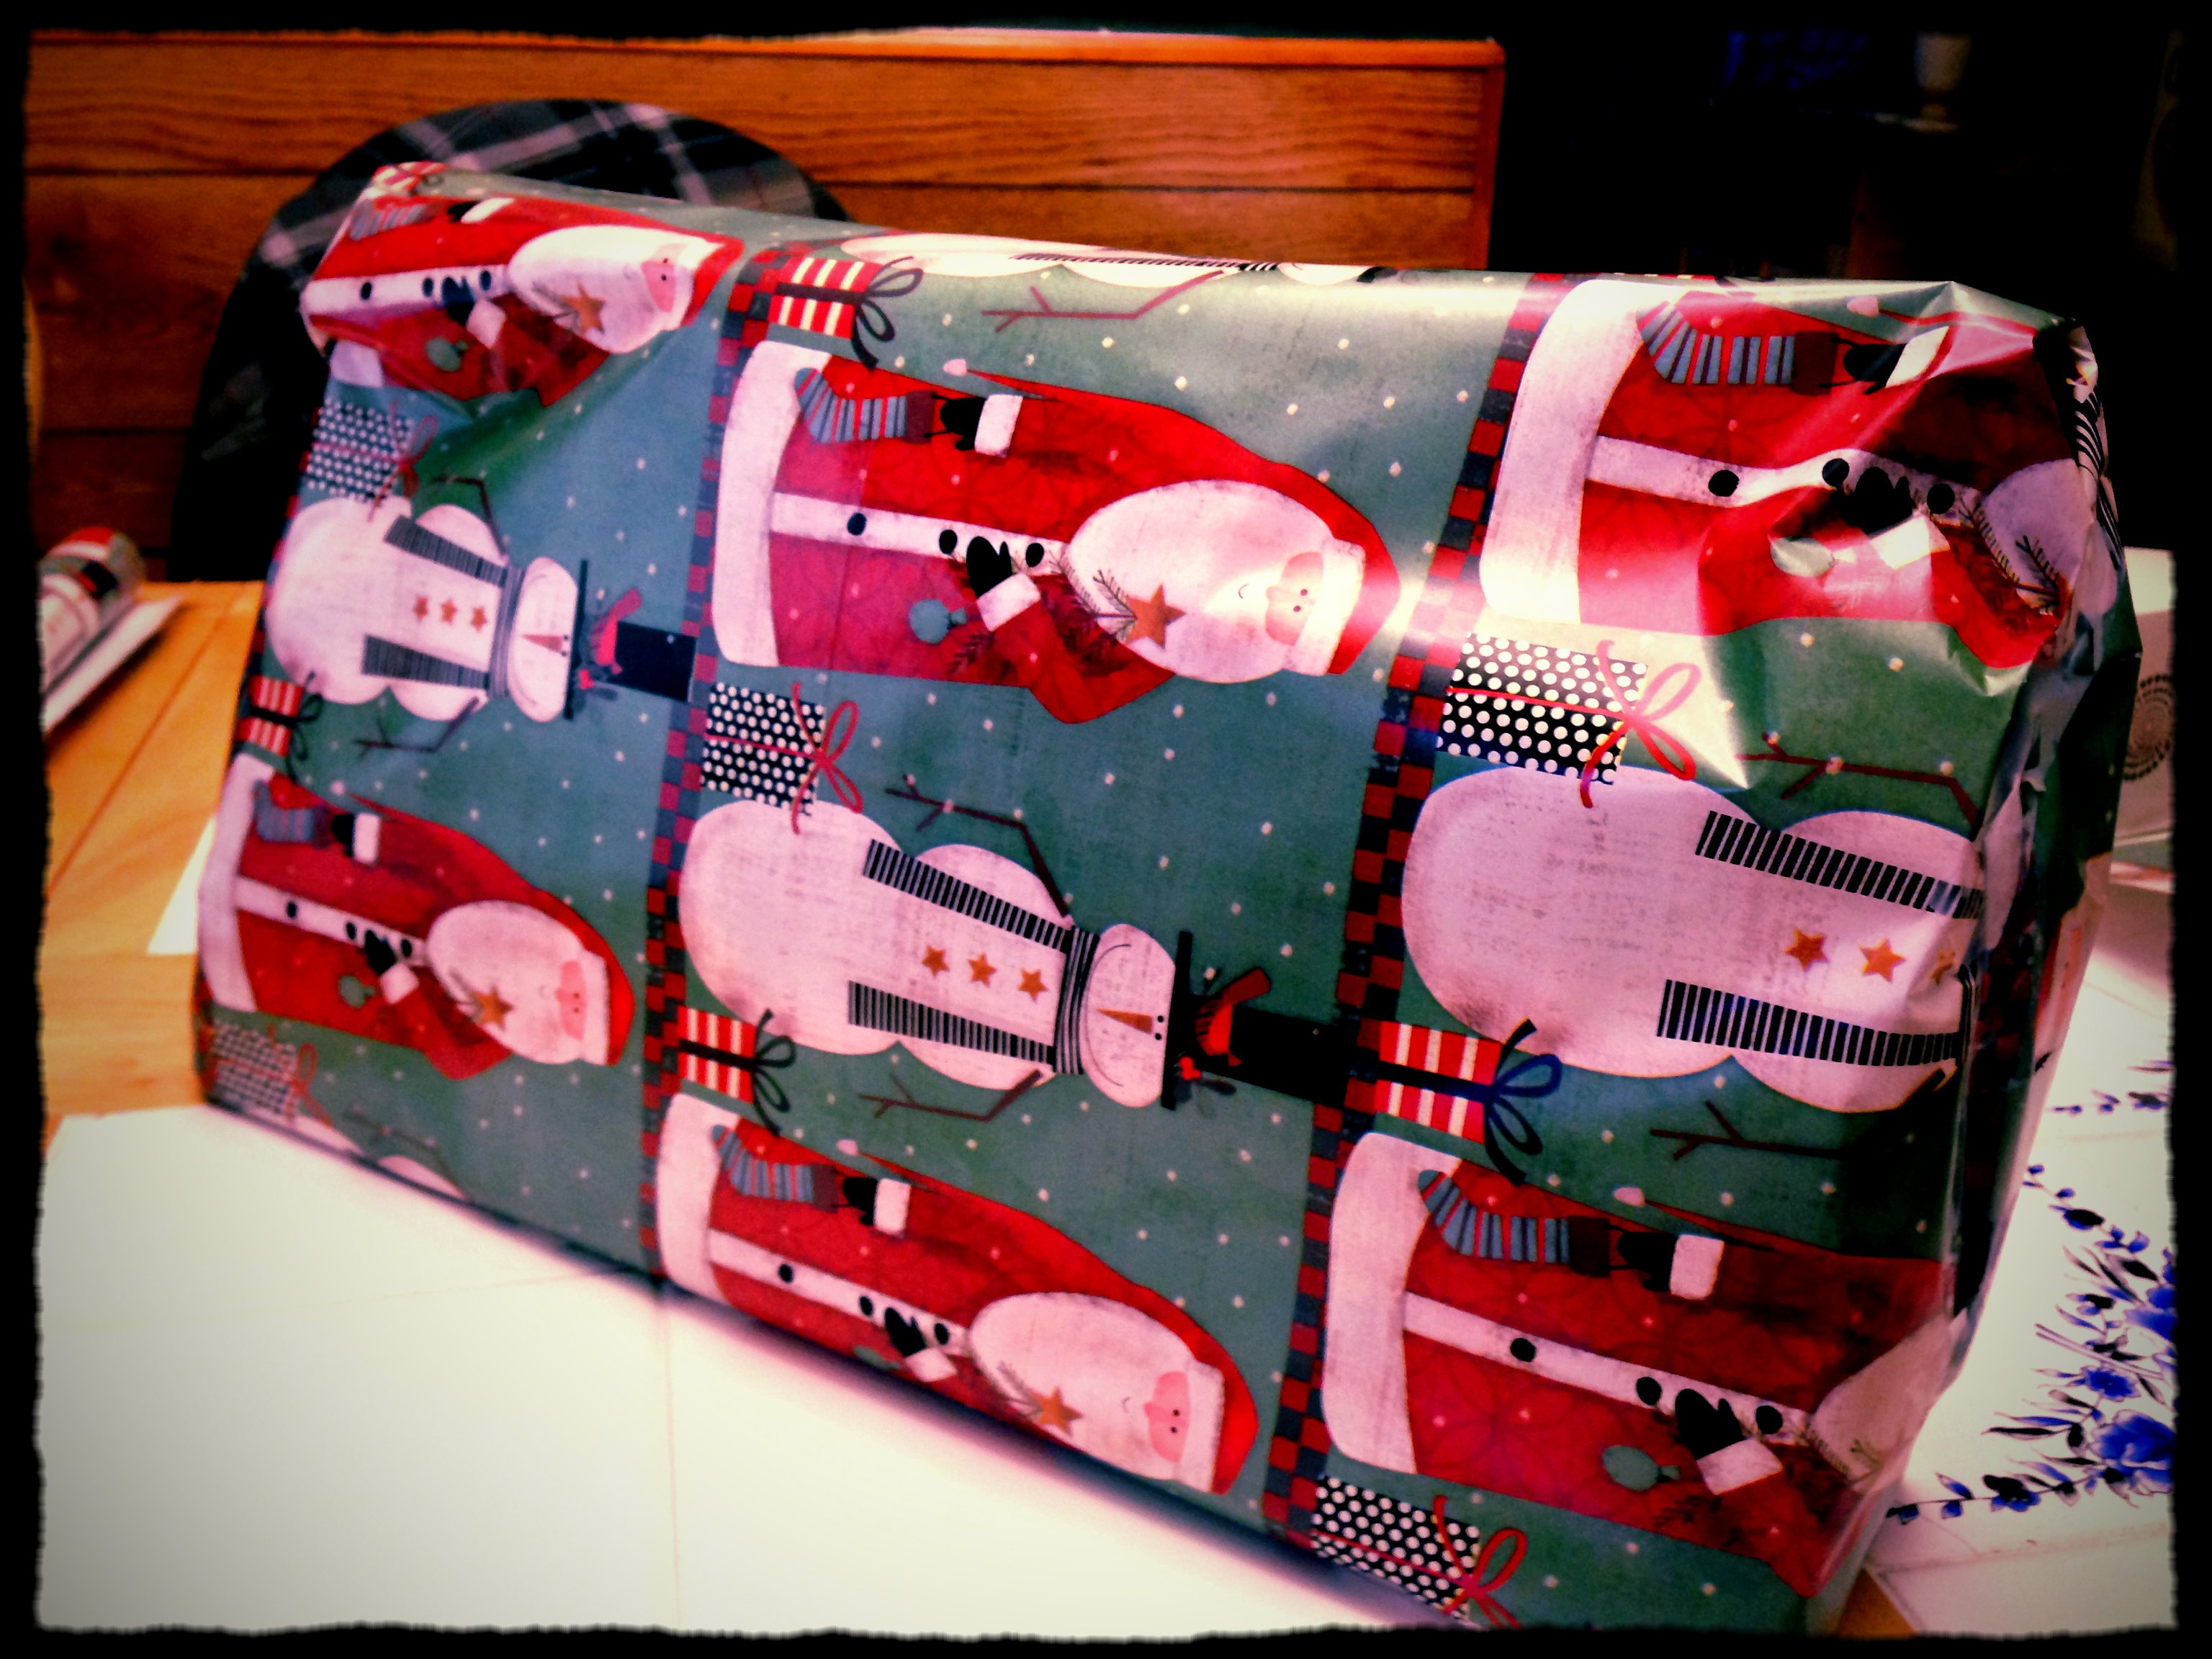 I'm the worst gift wrapper ever.